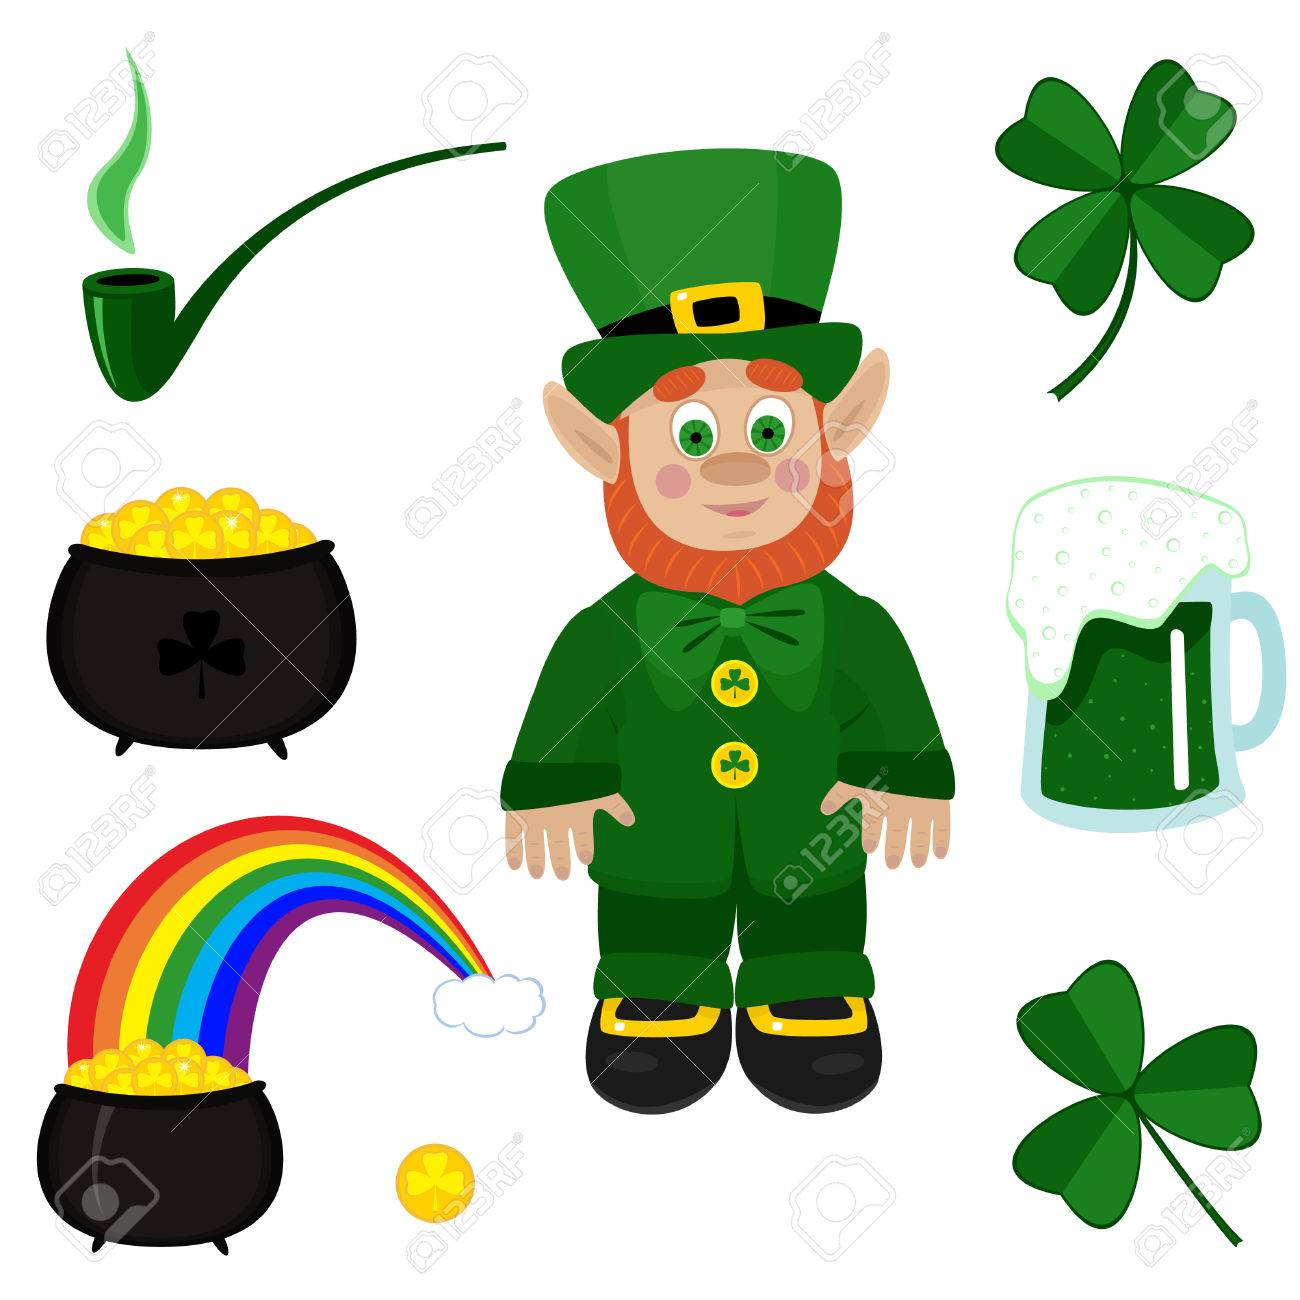 St. Patricks Day Clip-art On White Background. Royalty Free ...